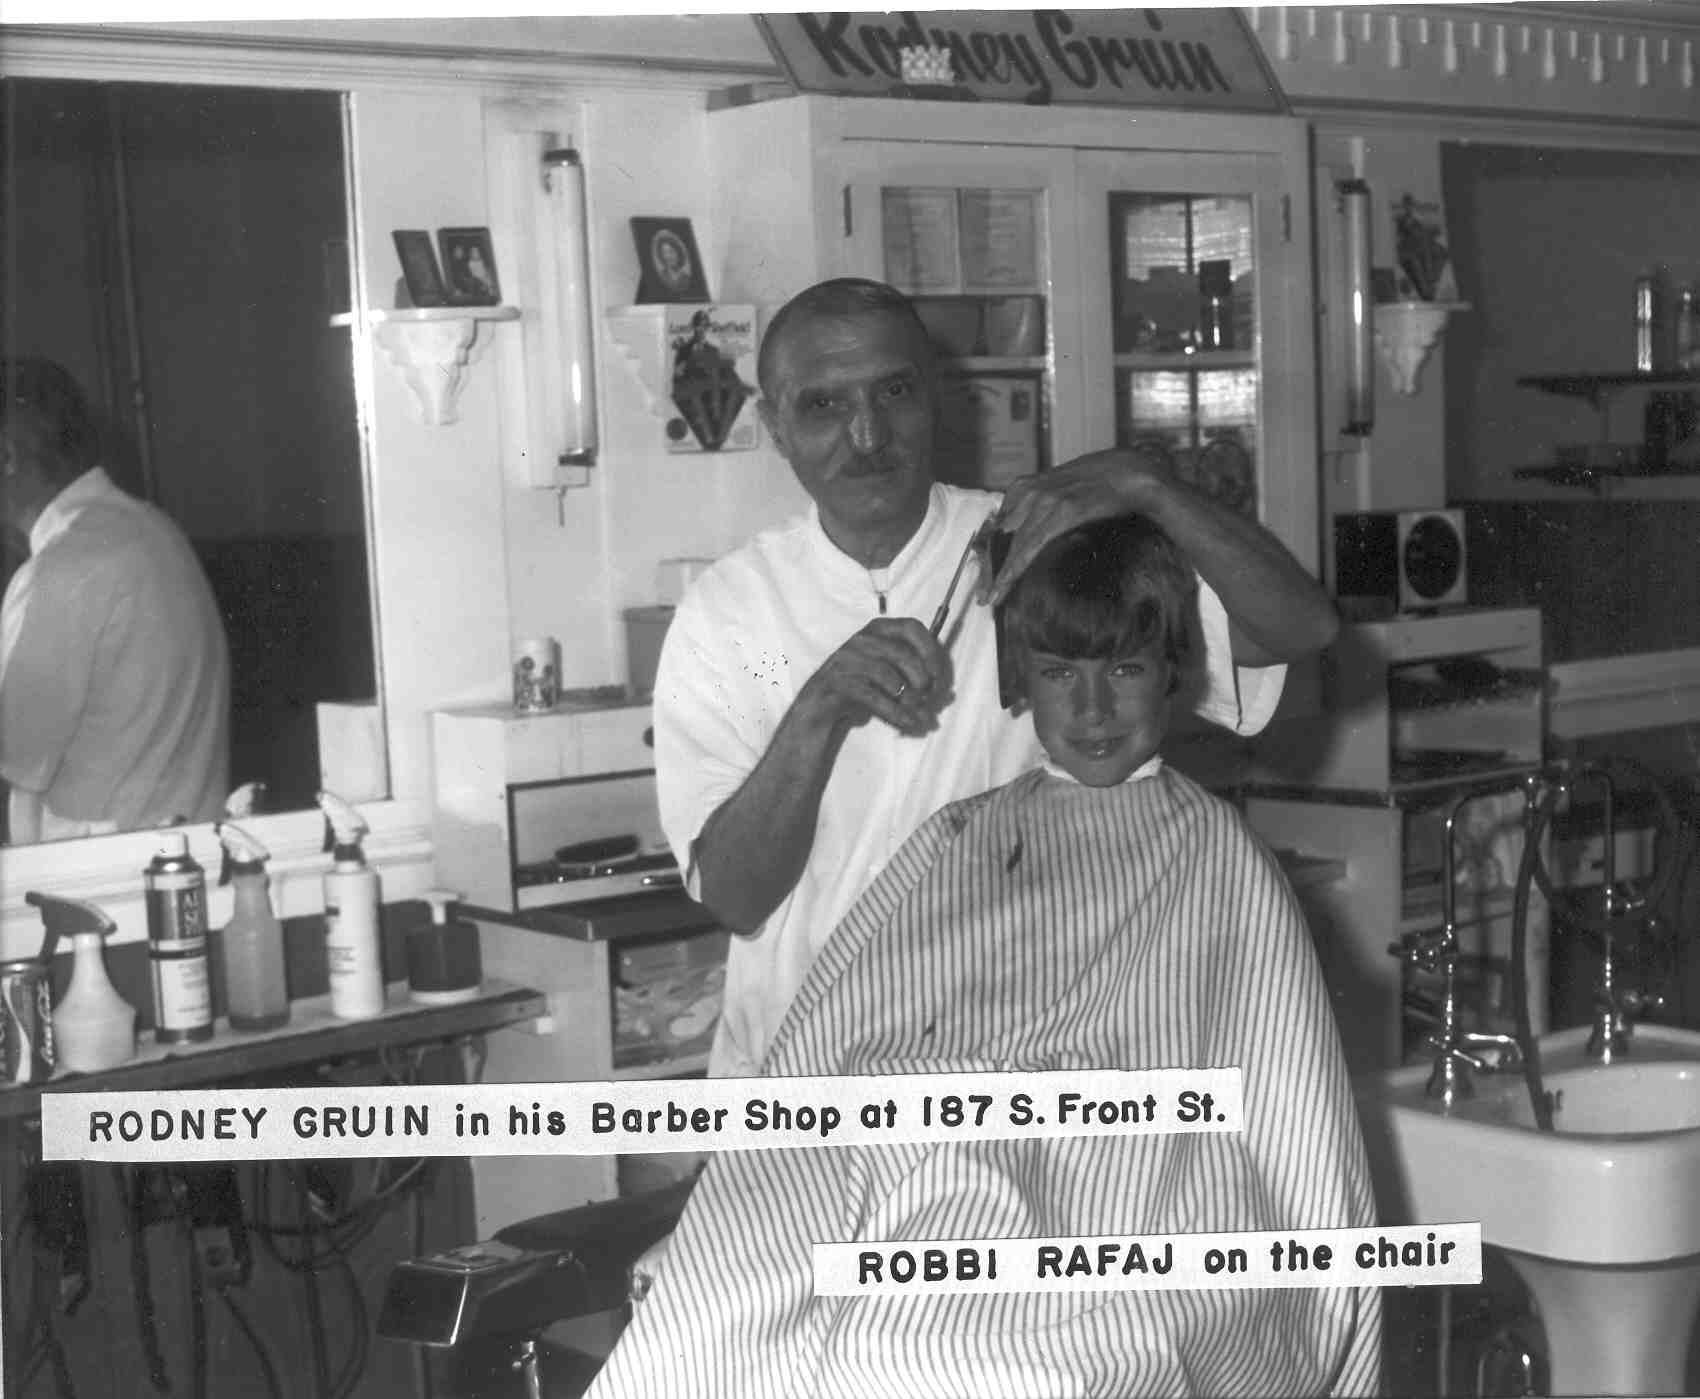 Rodney Gruin in his Barber shop, 187 S. Front Street